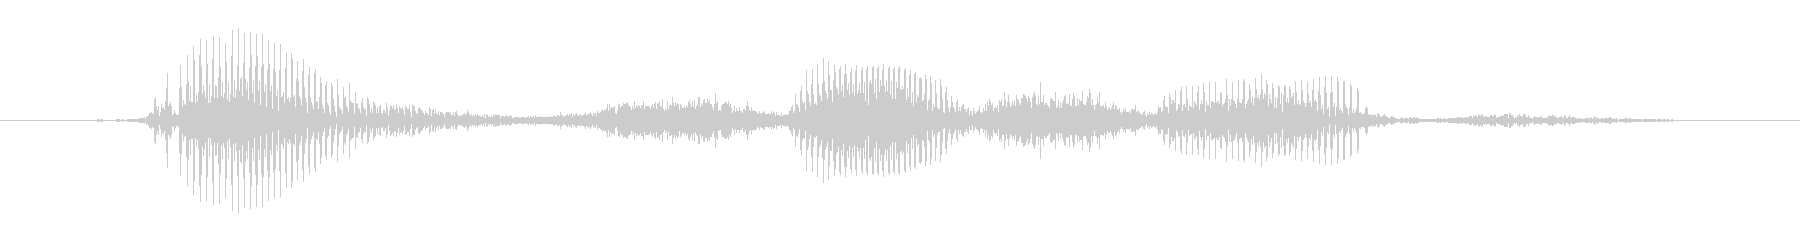 Oh yeah (female)'s unreproduced waveform